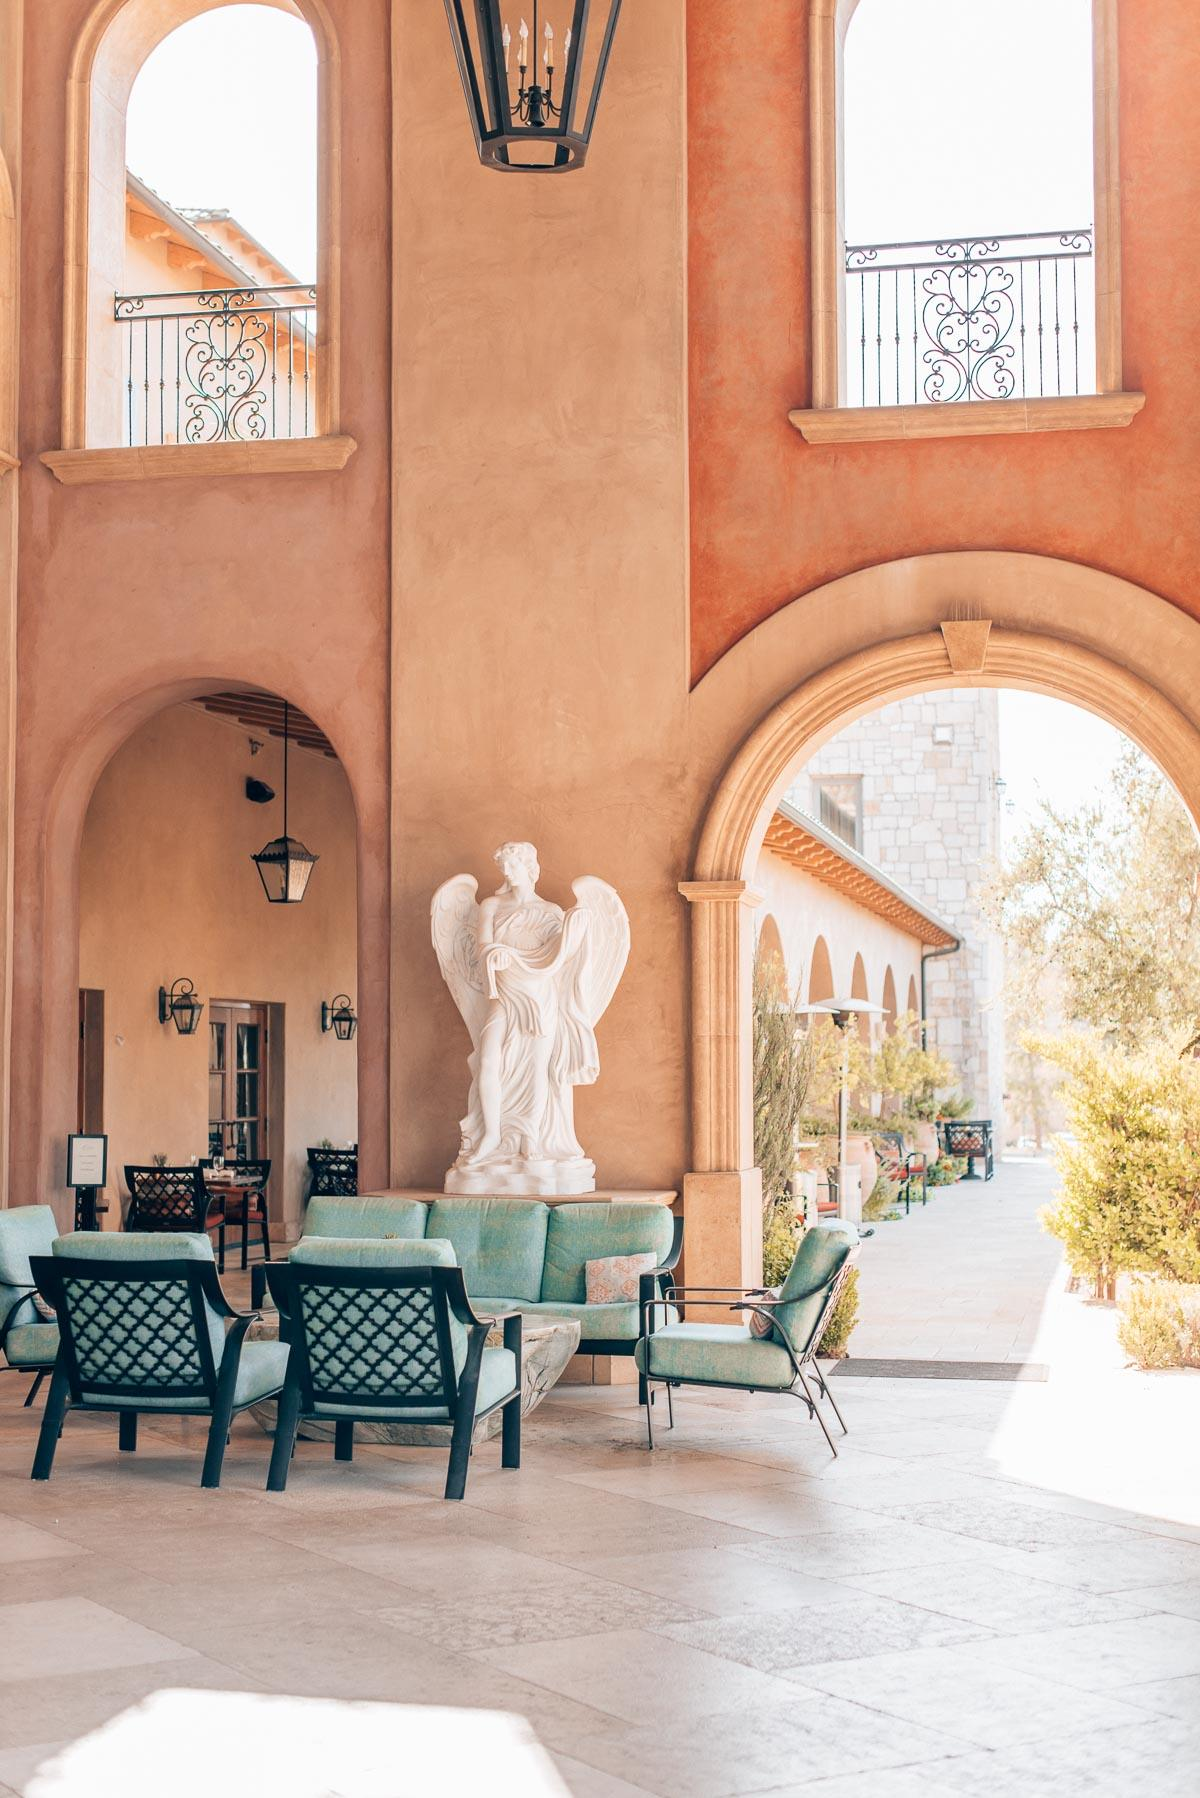 Allegretto Paso Robles hotel review, by travel blogger What The Fab